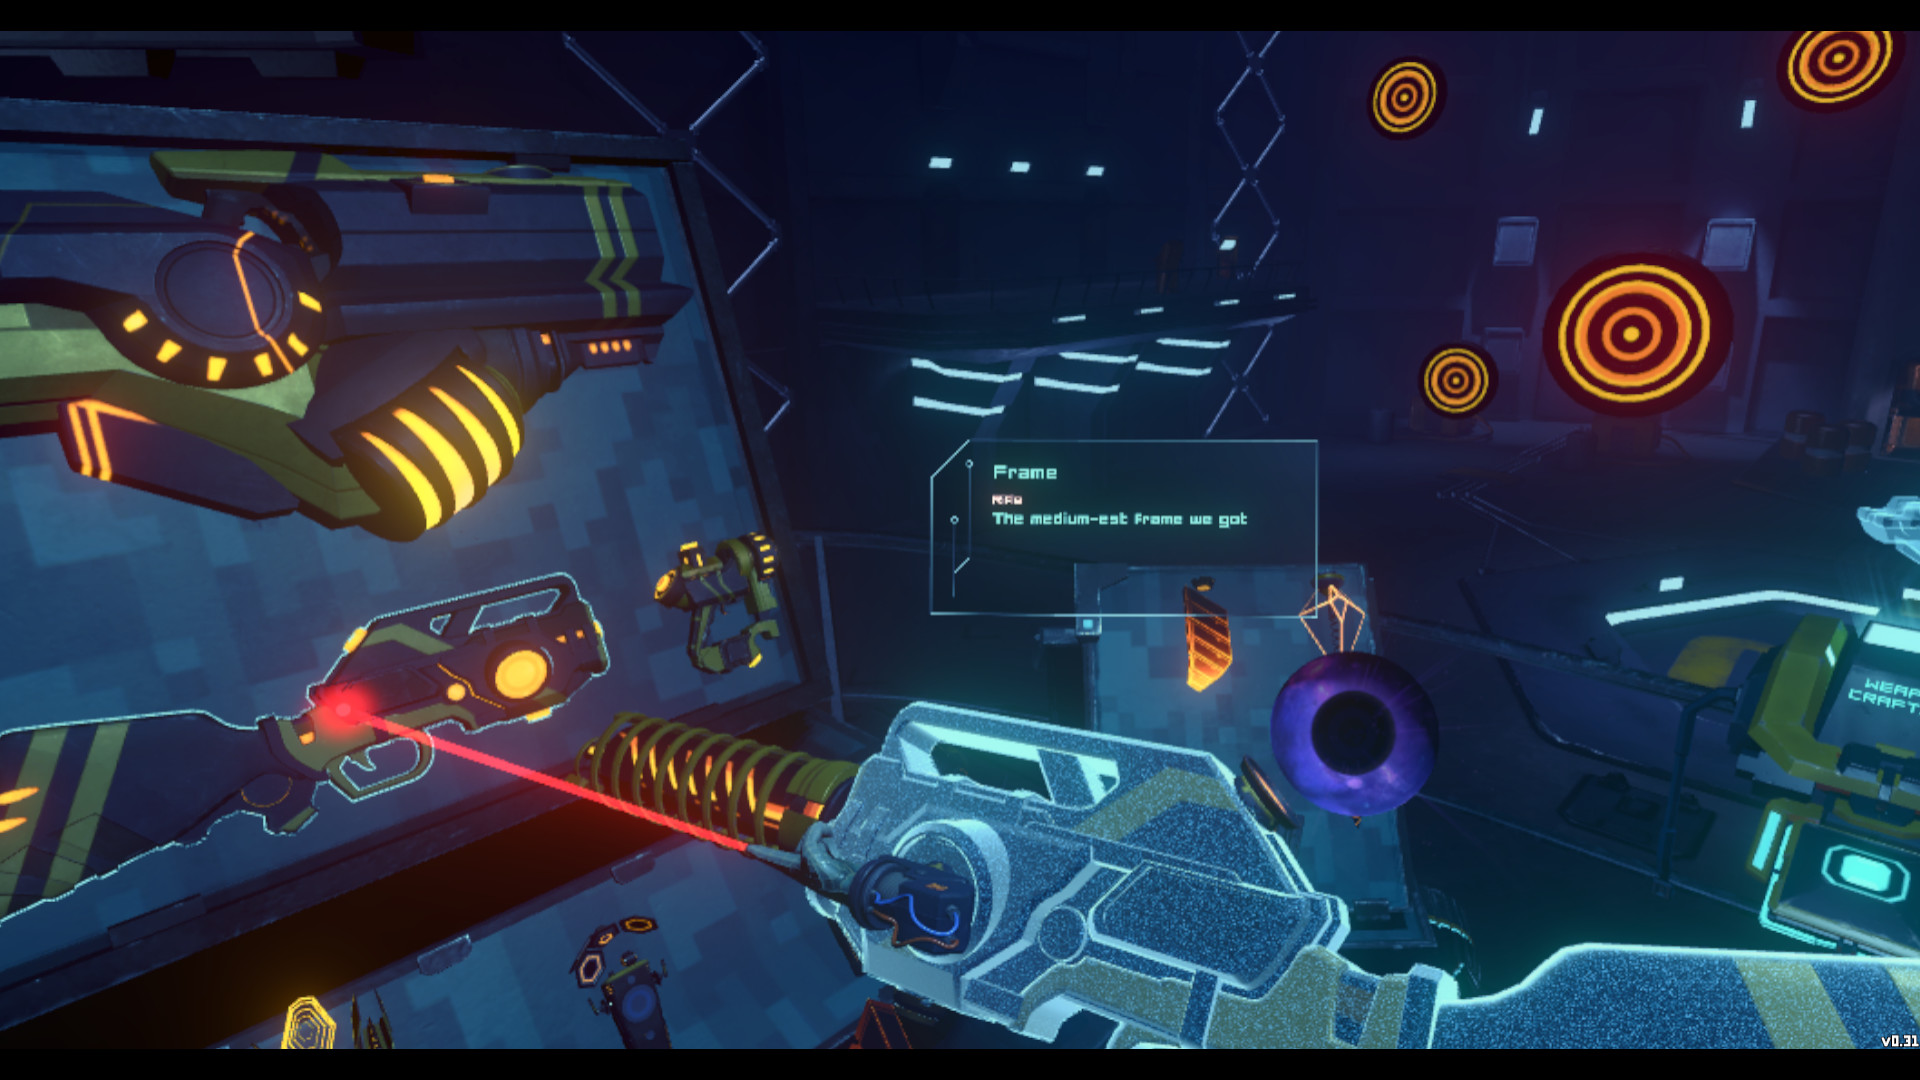 Blasters-of-the-Universe-Oculus-Rift-HTC-Vive-Steam-VR-Bullet-Hell